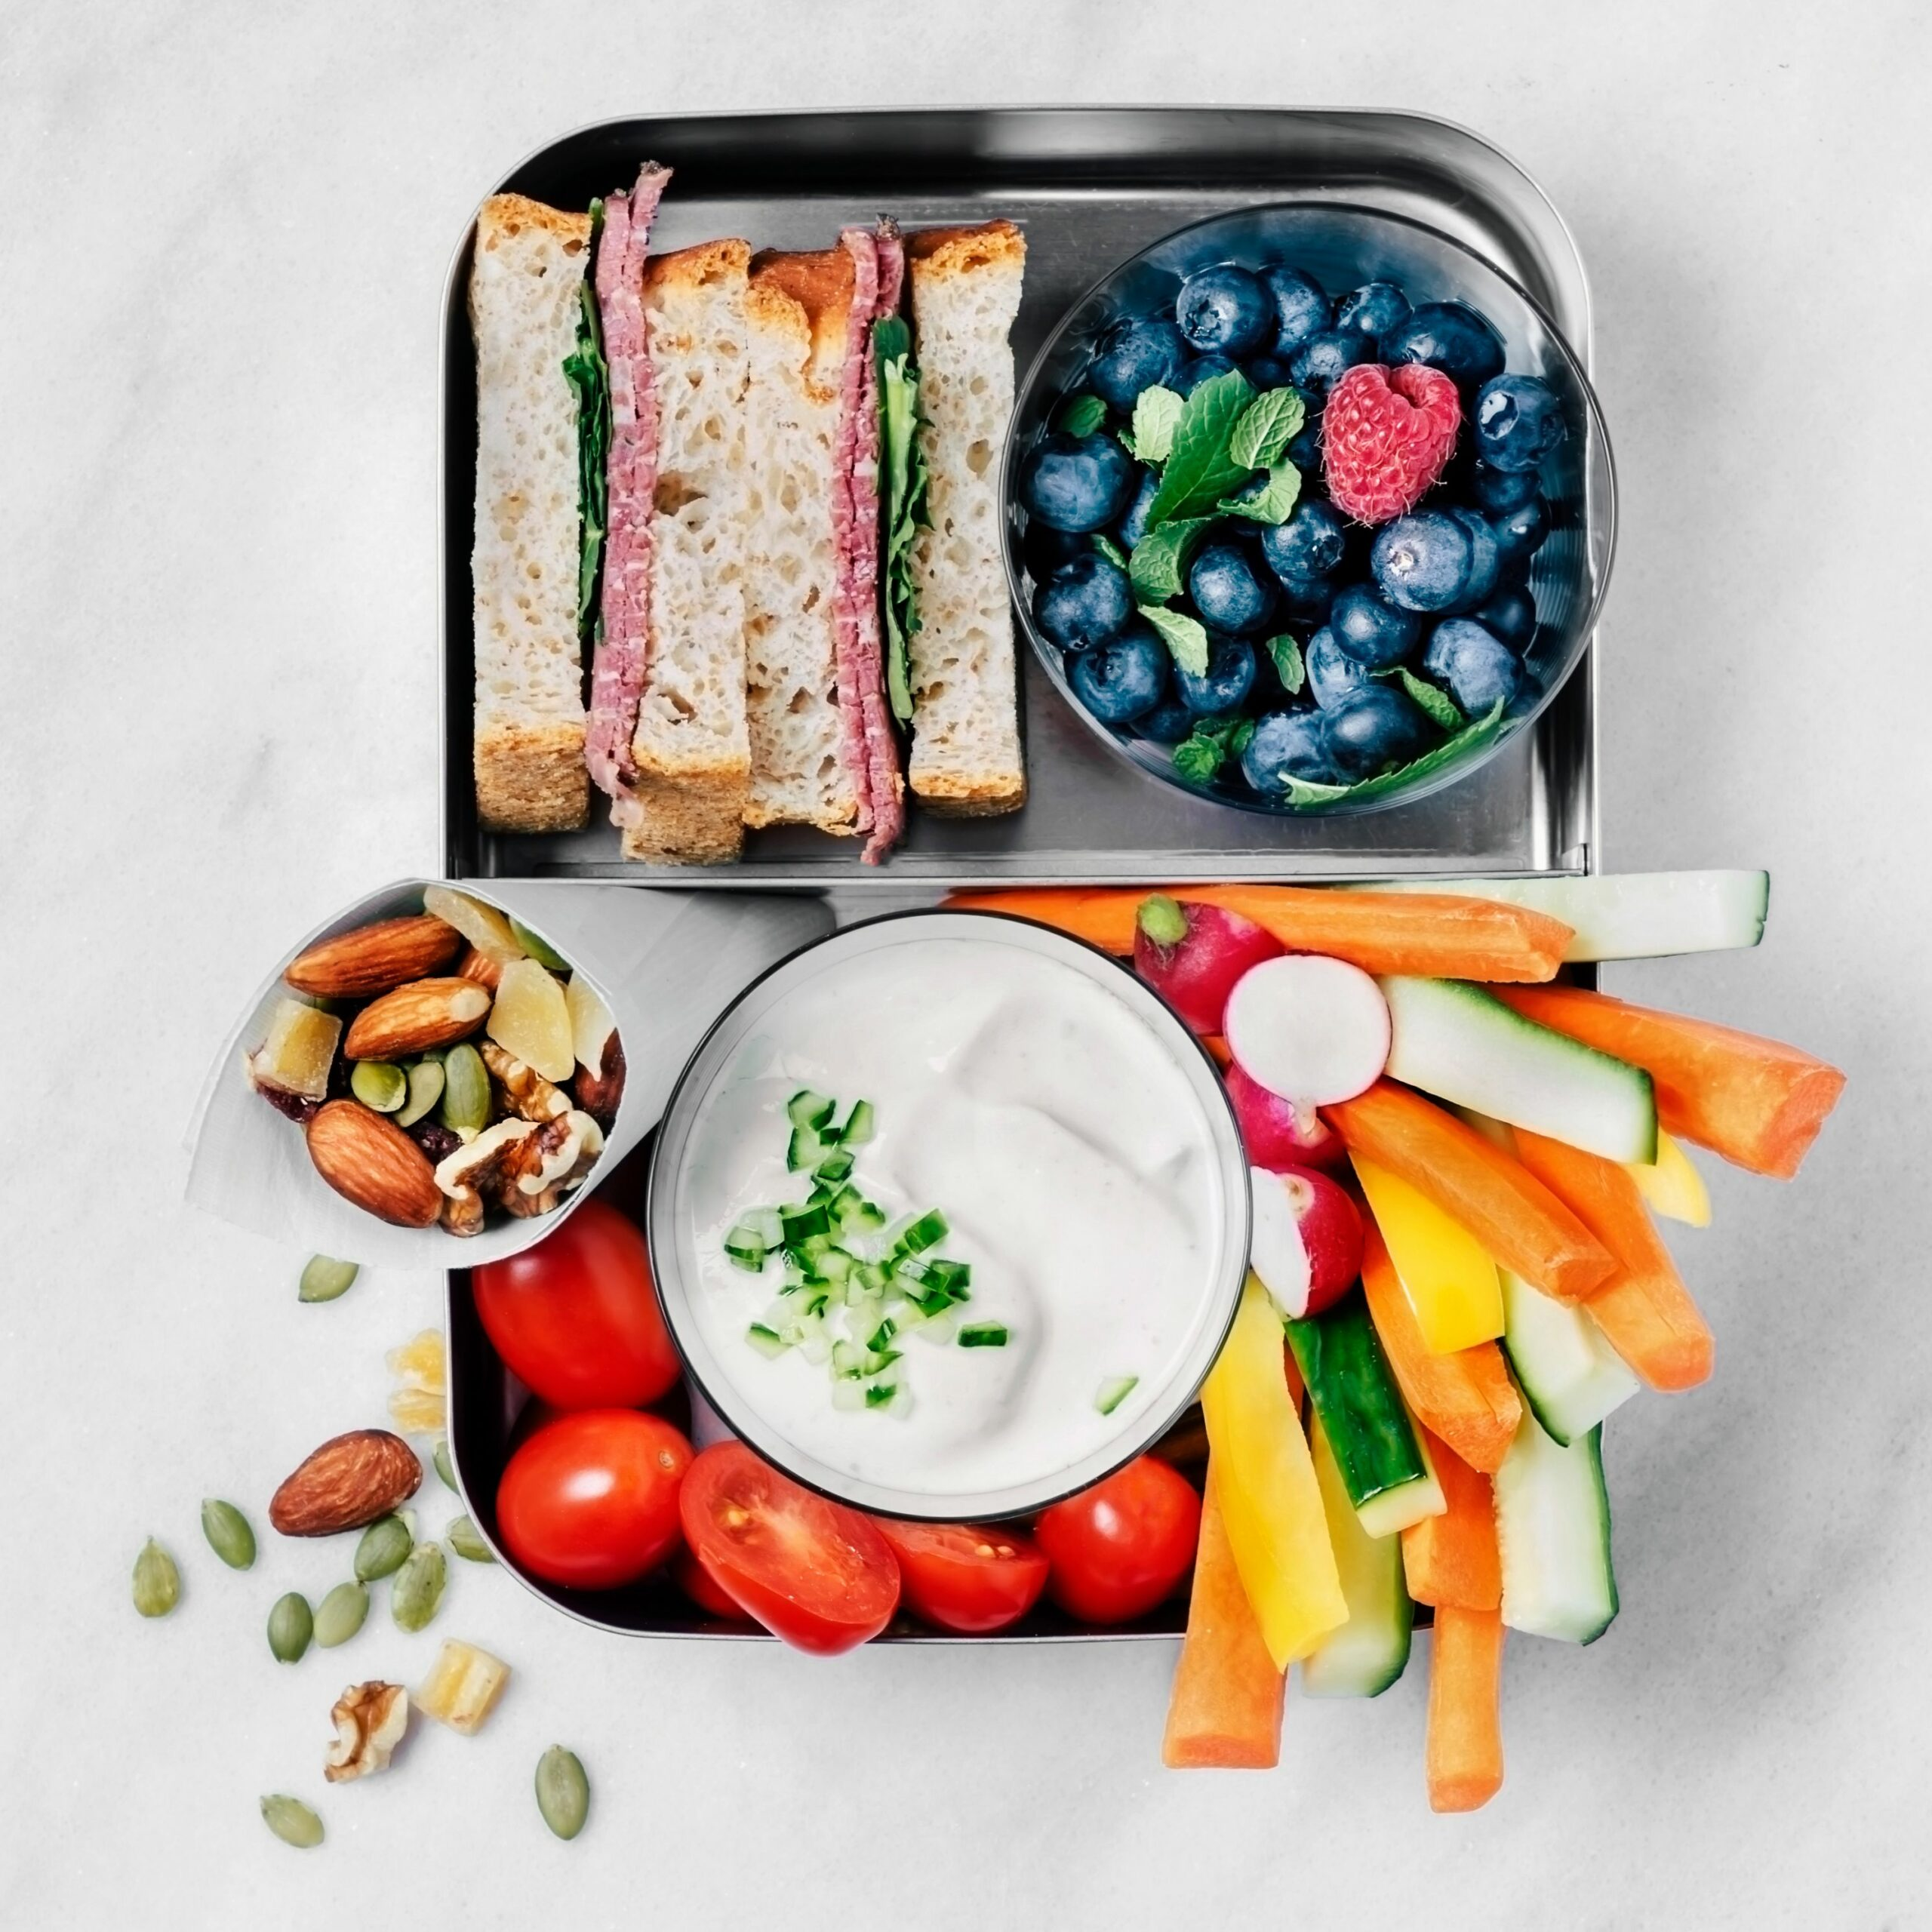 Easy Lunch Ideas: Weight Loss Recipes | Shape - Recipes For Weight Loss Lunch